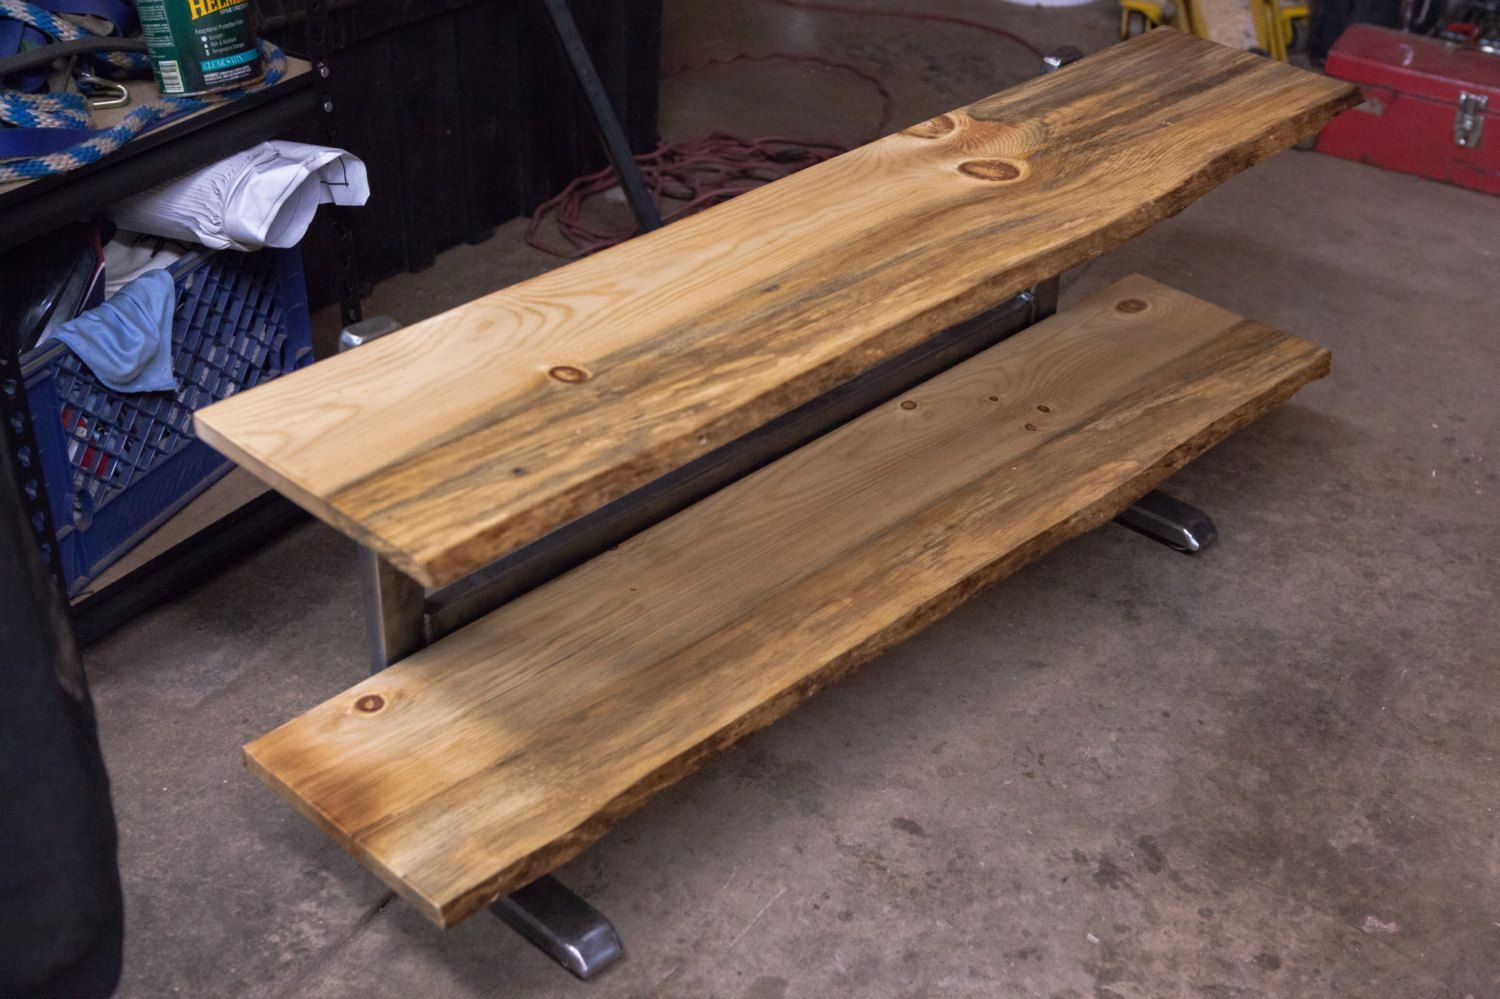 T V Stand Console Table Live Edge Pine Live Edge Table Industrial Tv Stand Diy Tv Stand